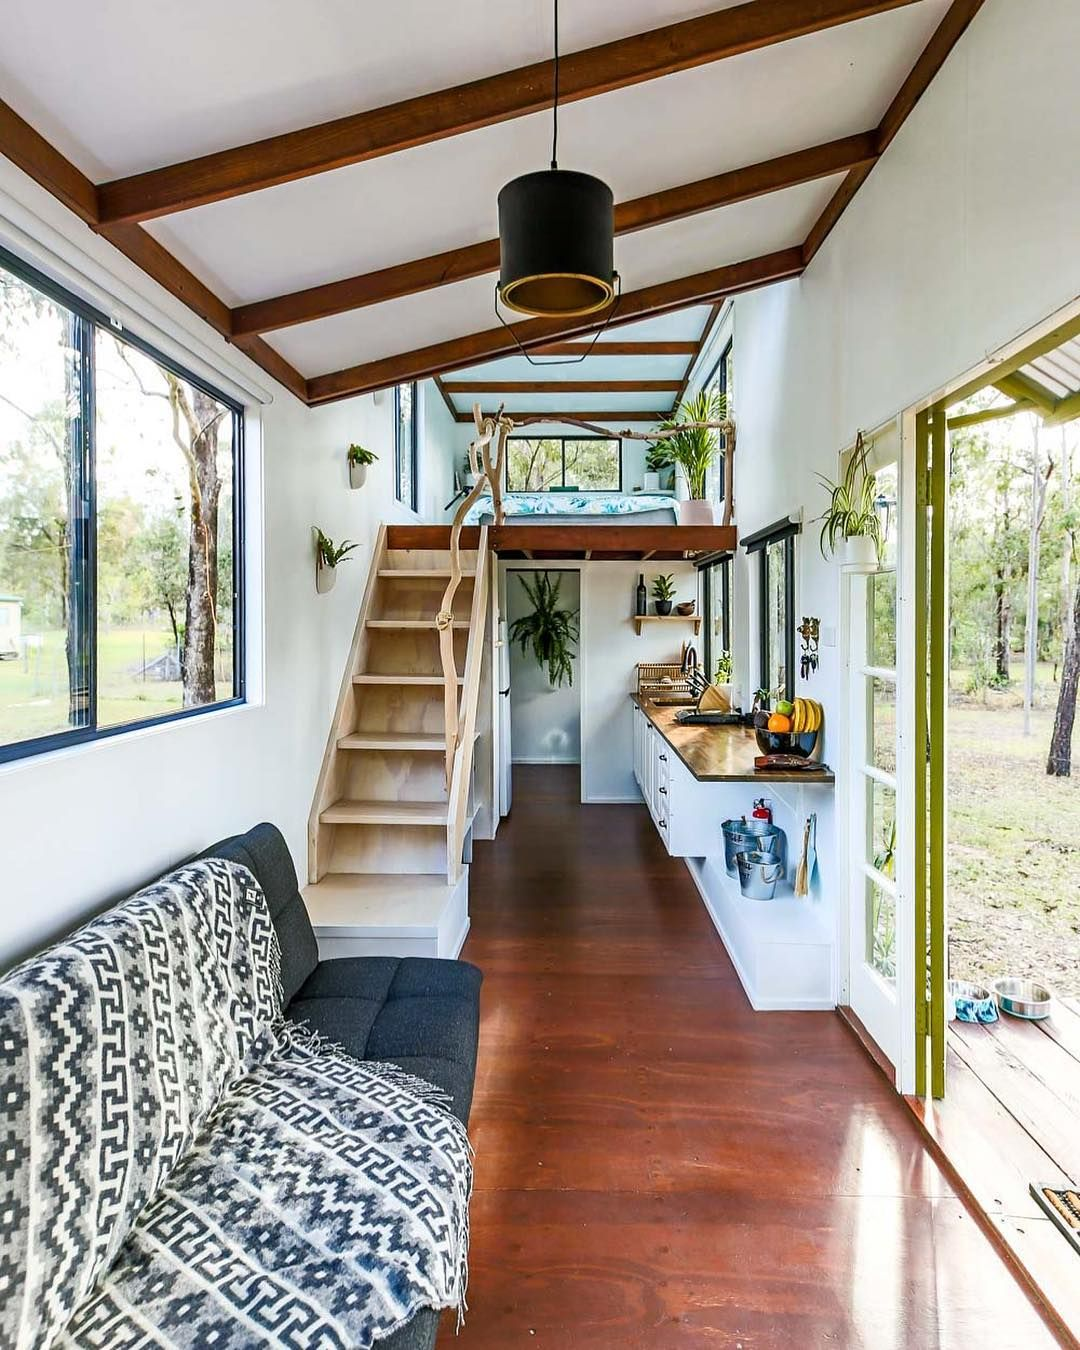 New Video Live Today Of This Stunning Eco Tiny House In Australia Check It Out Link In Story Tiny House Living Room Tiny House Design Simple House Design